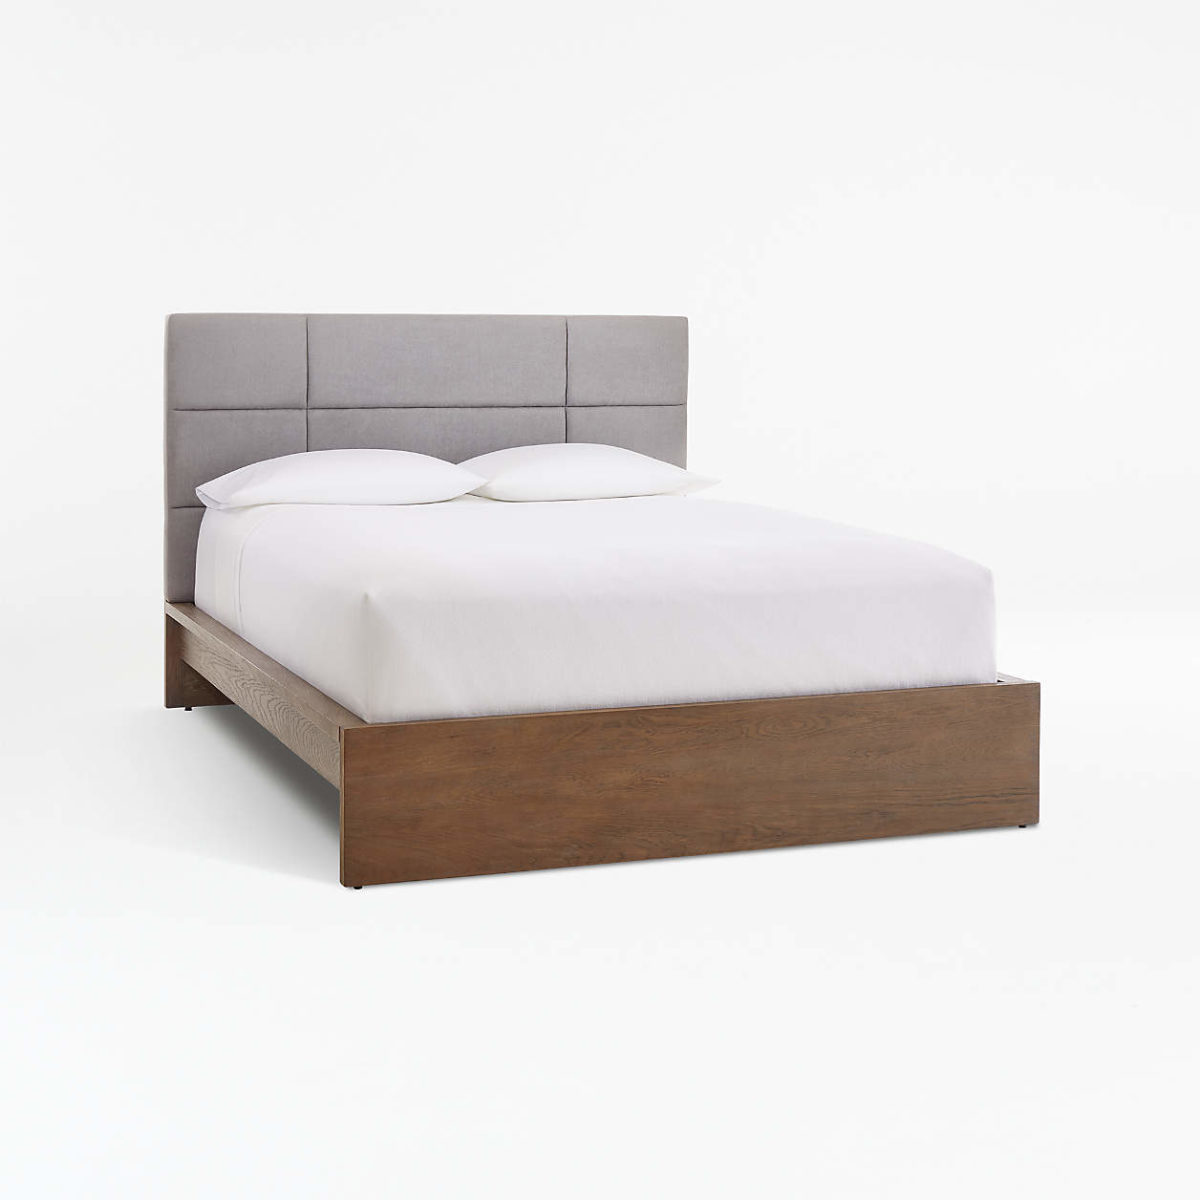 Get your home furniture including, Sofa, Bed, Sectional Sofa, Wardrobe, night stand, couches, dressing table Ottoman, Living Room Furniture.Sectional sofa, dubai furniture,furniture store near me, online furniture store, home furniture, best furniture in dubai, accent chair, armless chair, online furniture store in dubai, office furniture, baby beds, cribs, bunk beds, Temple, mandir